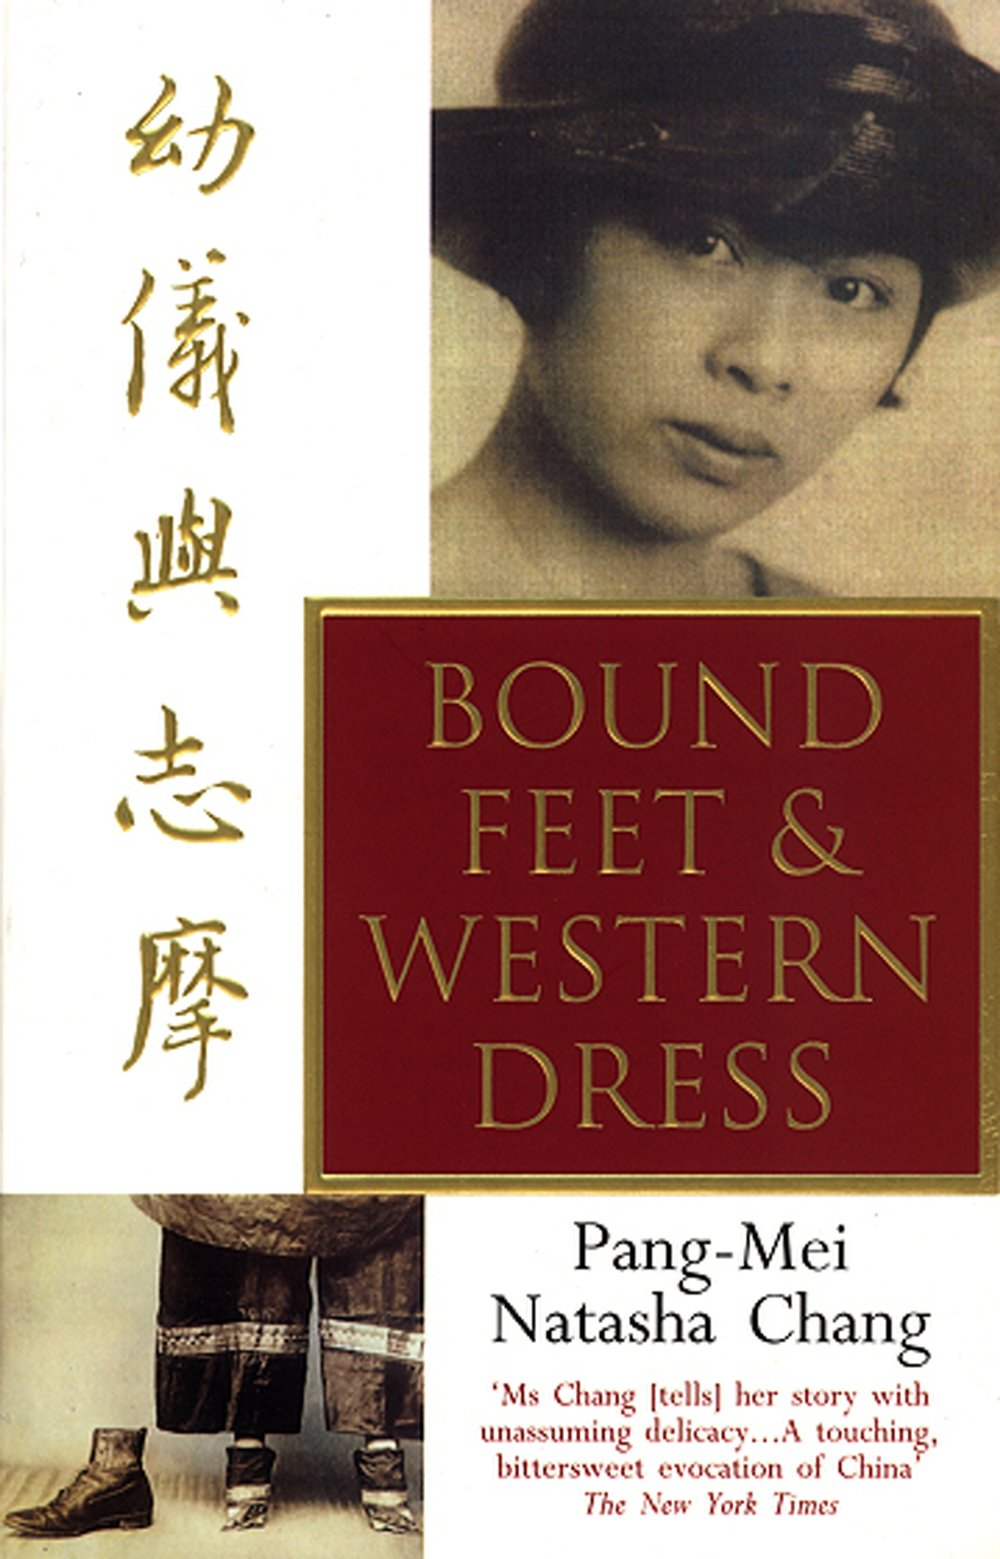 Bound Feet & Western Dress